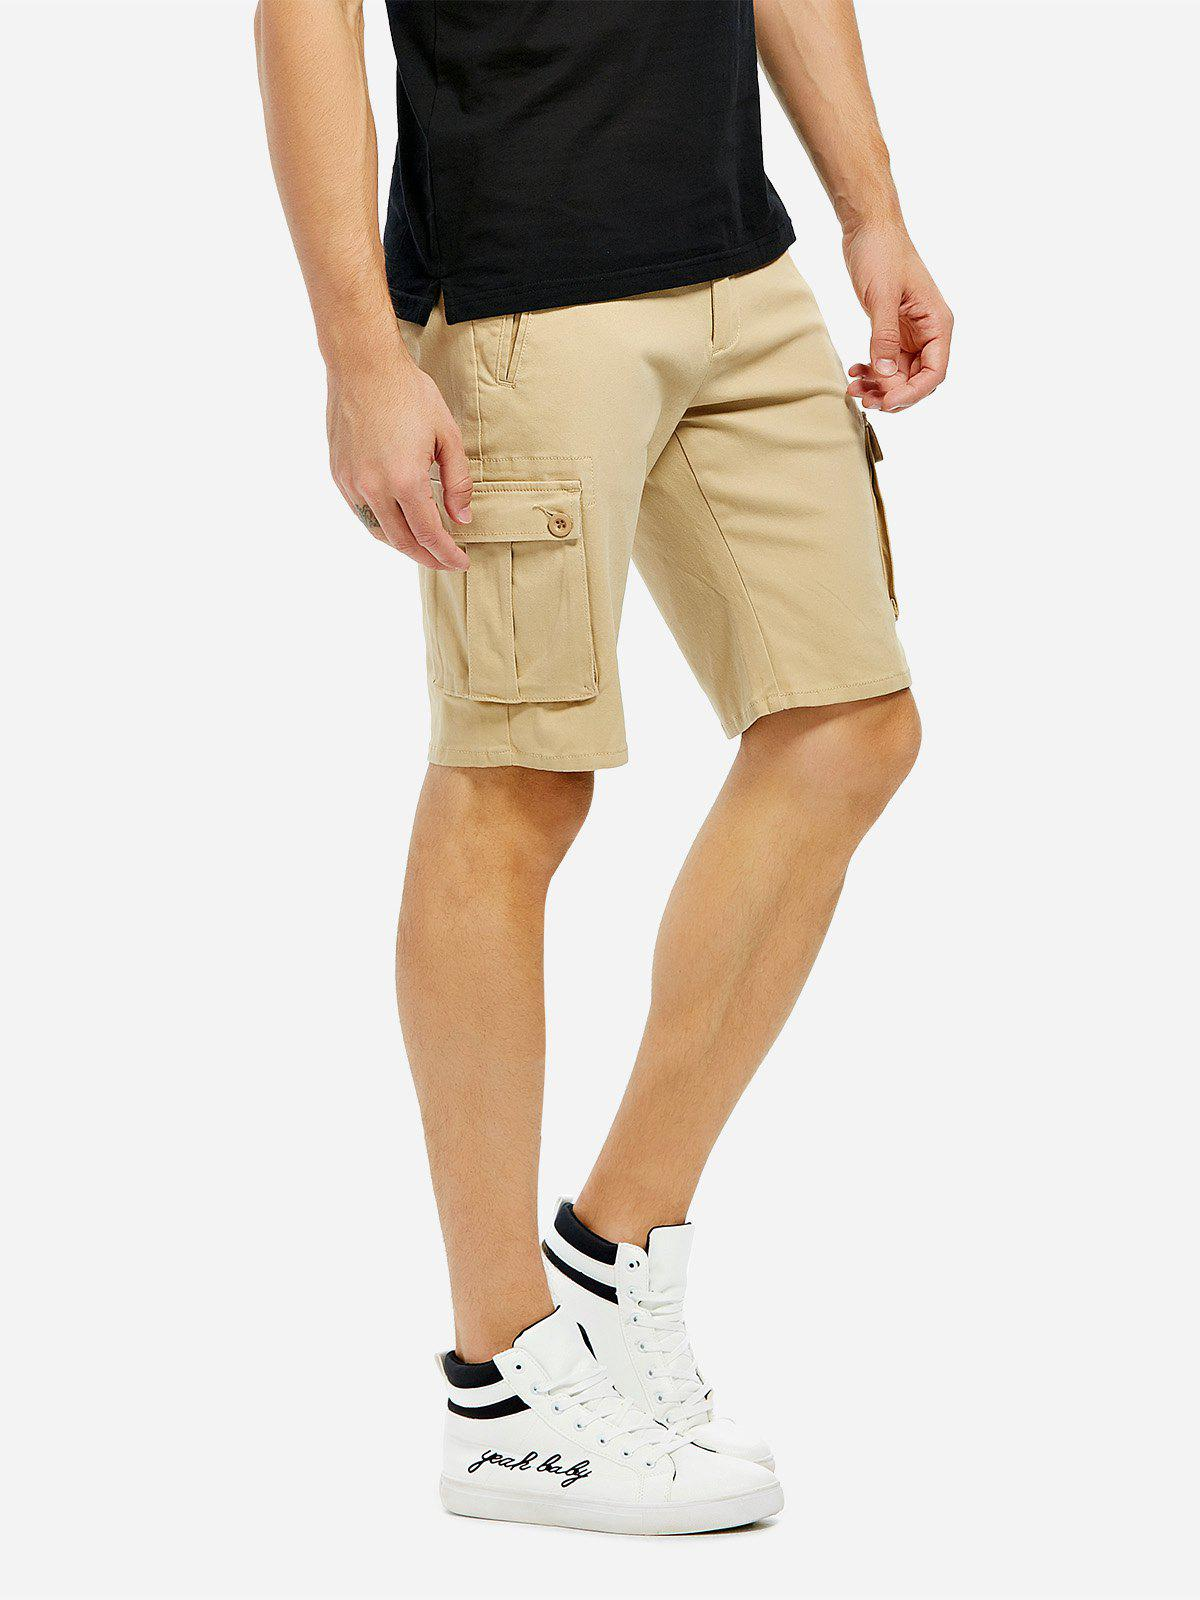 ZANSTYLE Hommes Knee Longueur Cargo Shorts